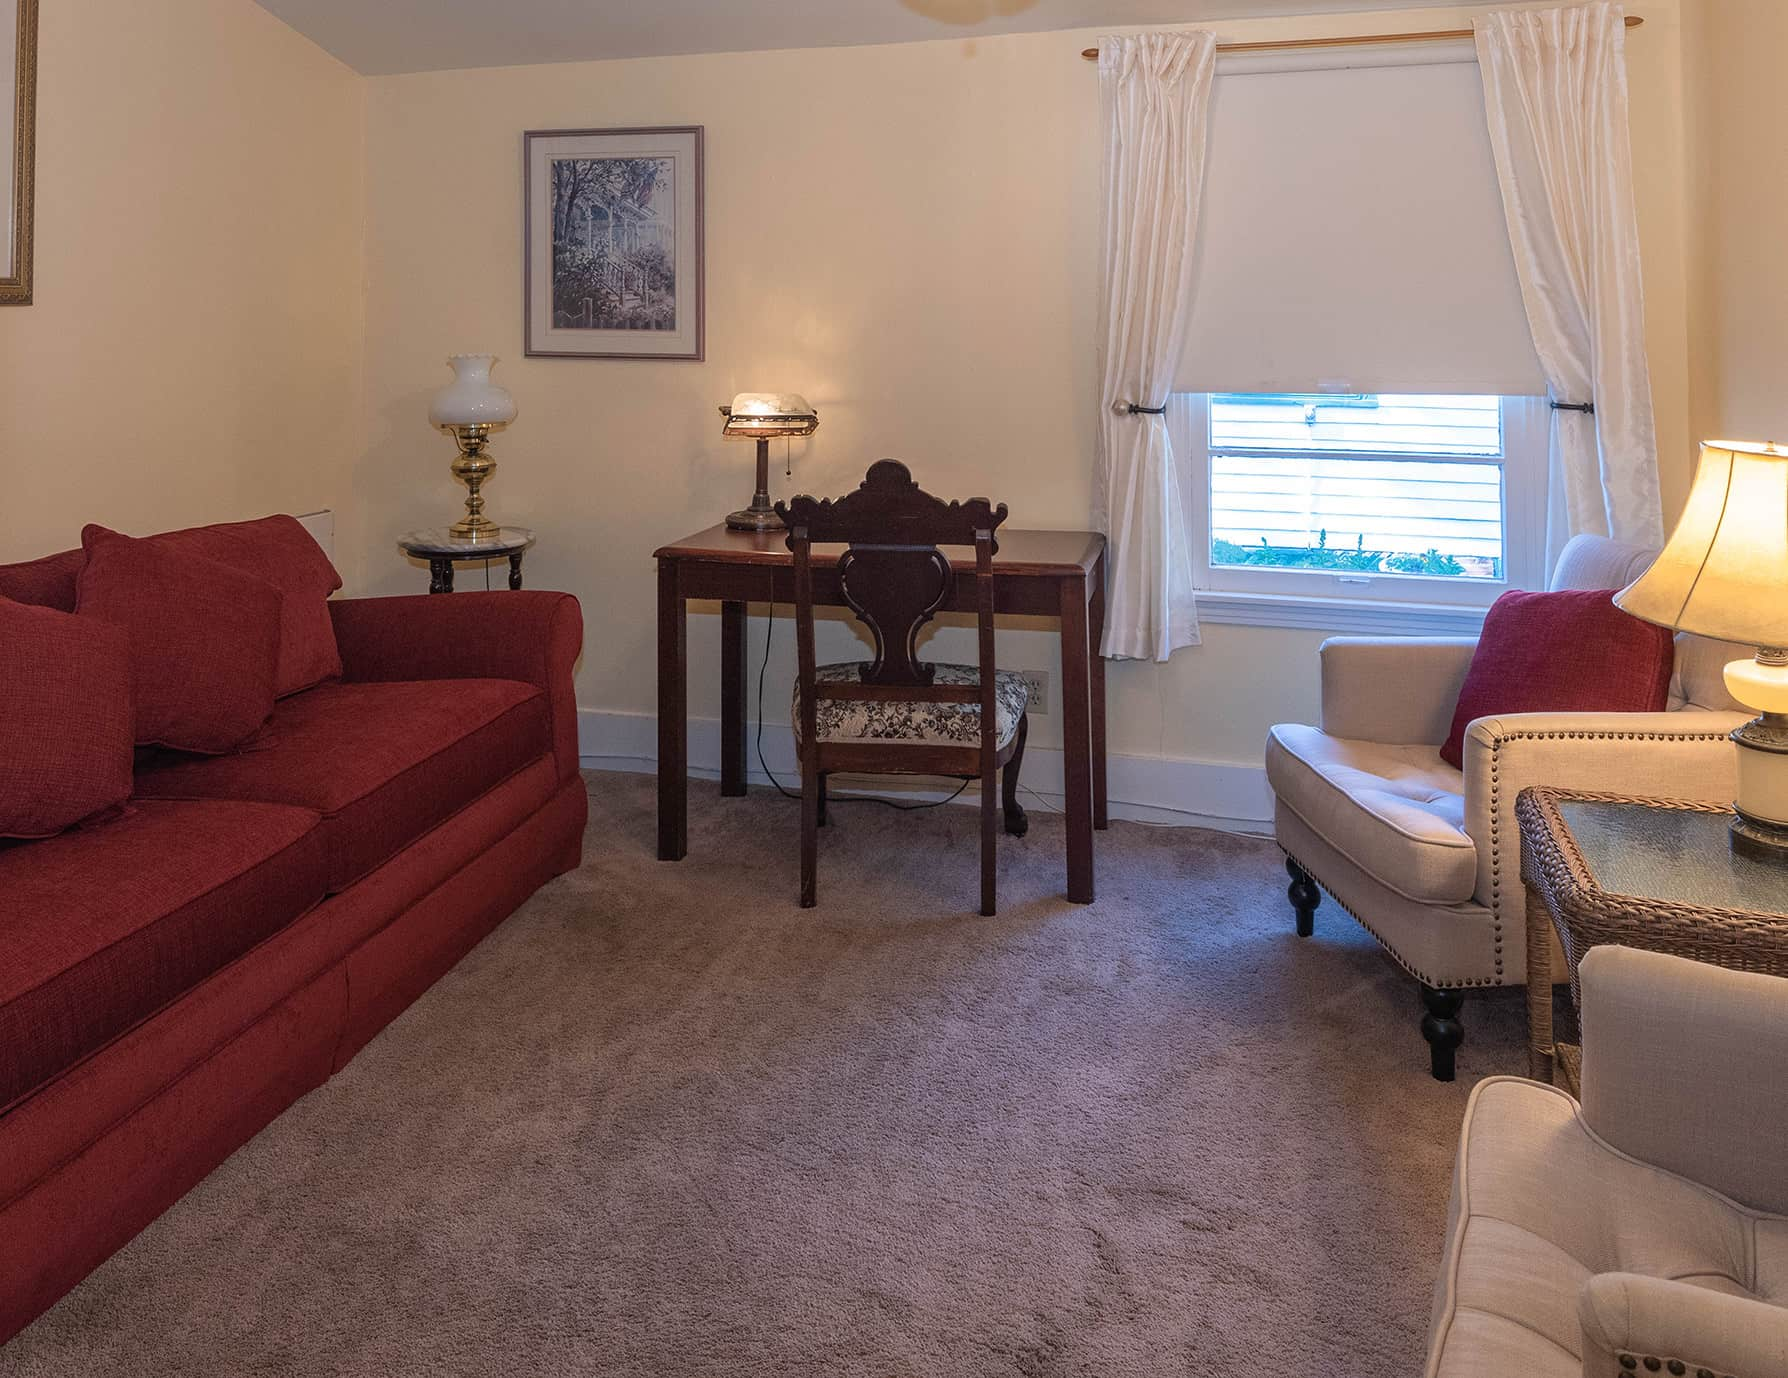 Victoria Suite at our Pet Friendly Natchez, MS Bed and Breakfast